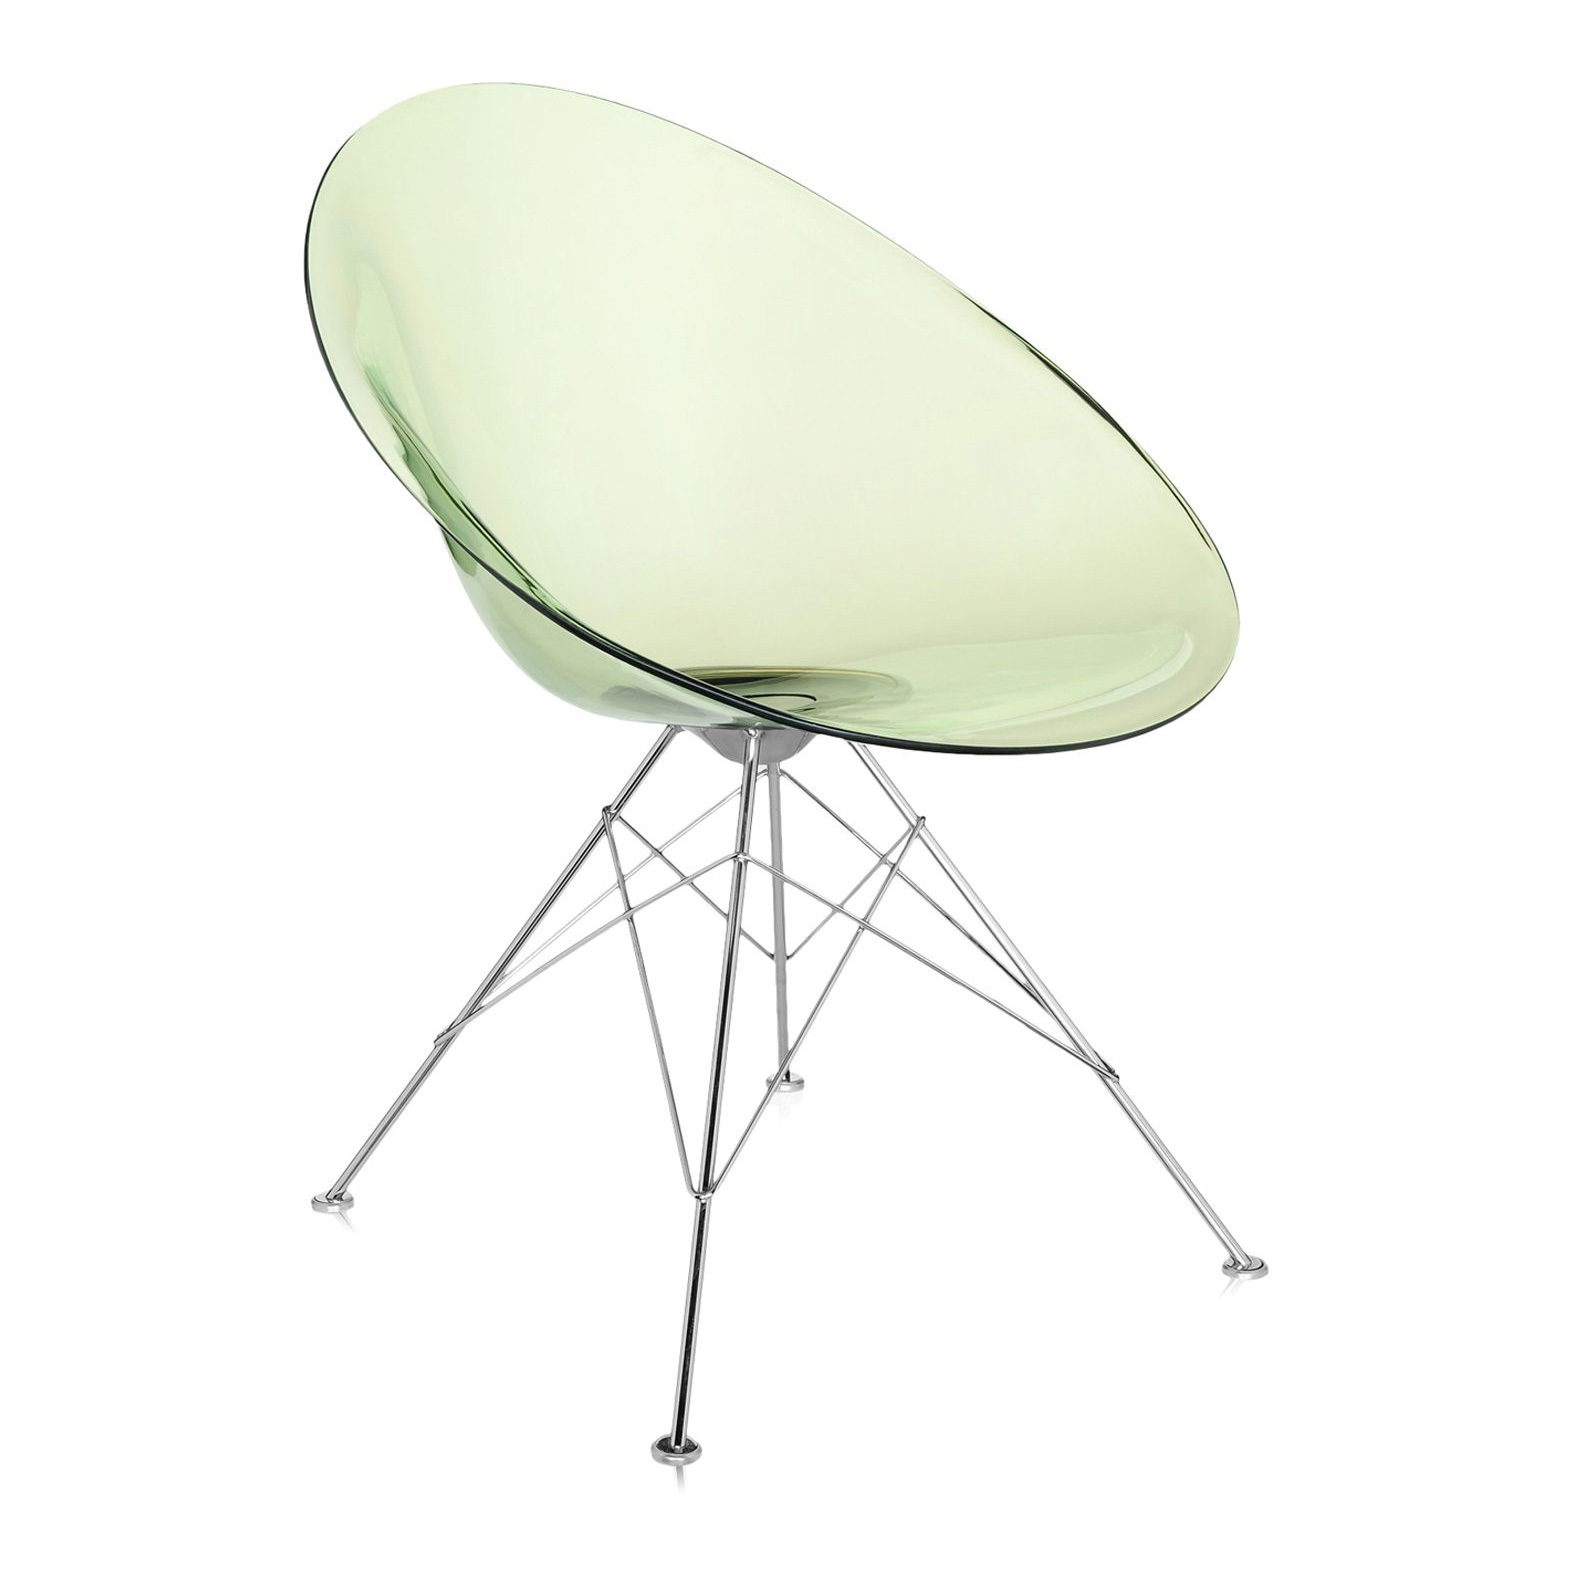 kartell eros chair on glides designed by philippe starck -  kartell eros tub chair on glides